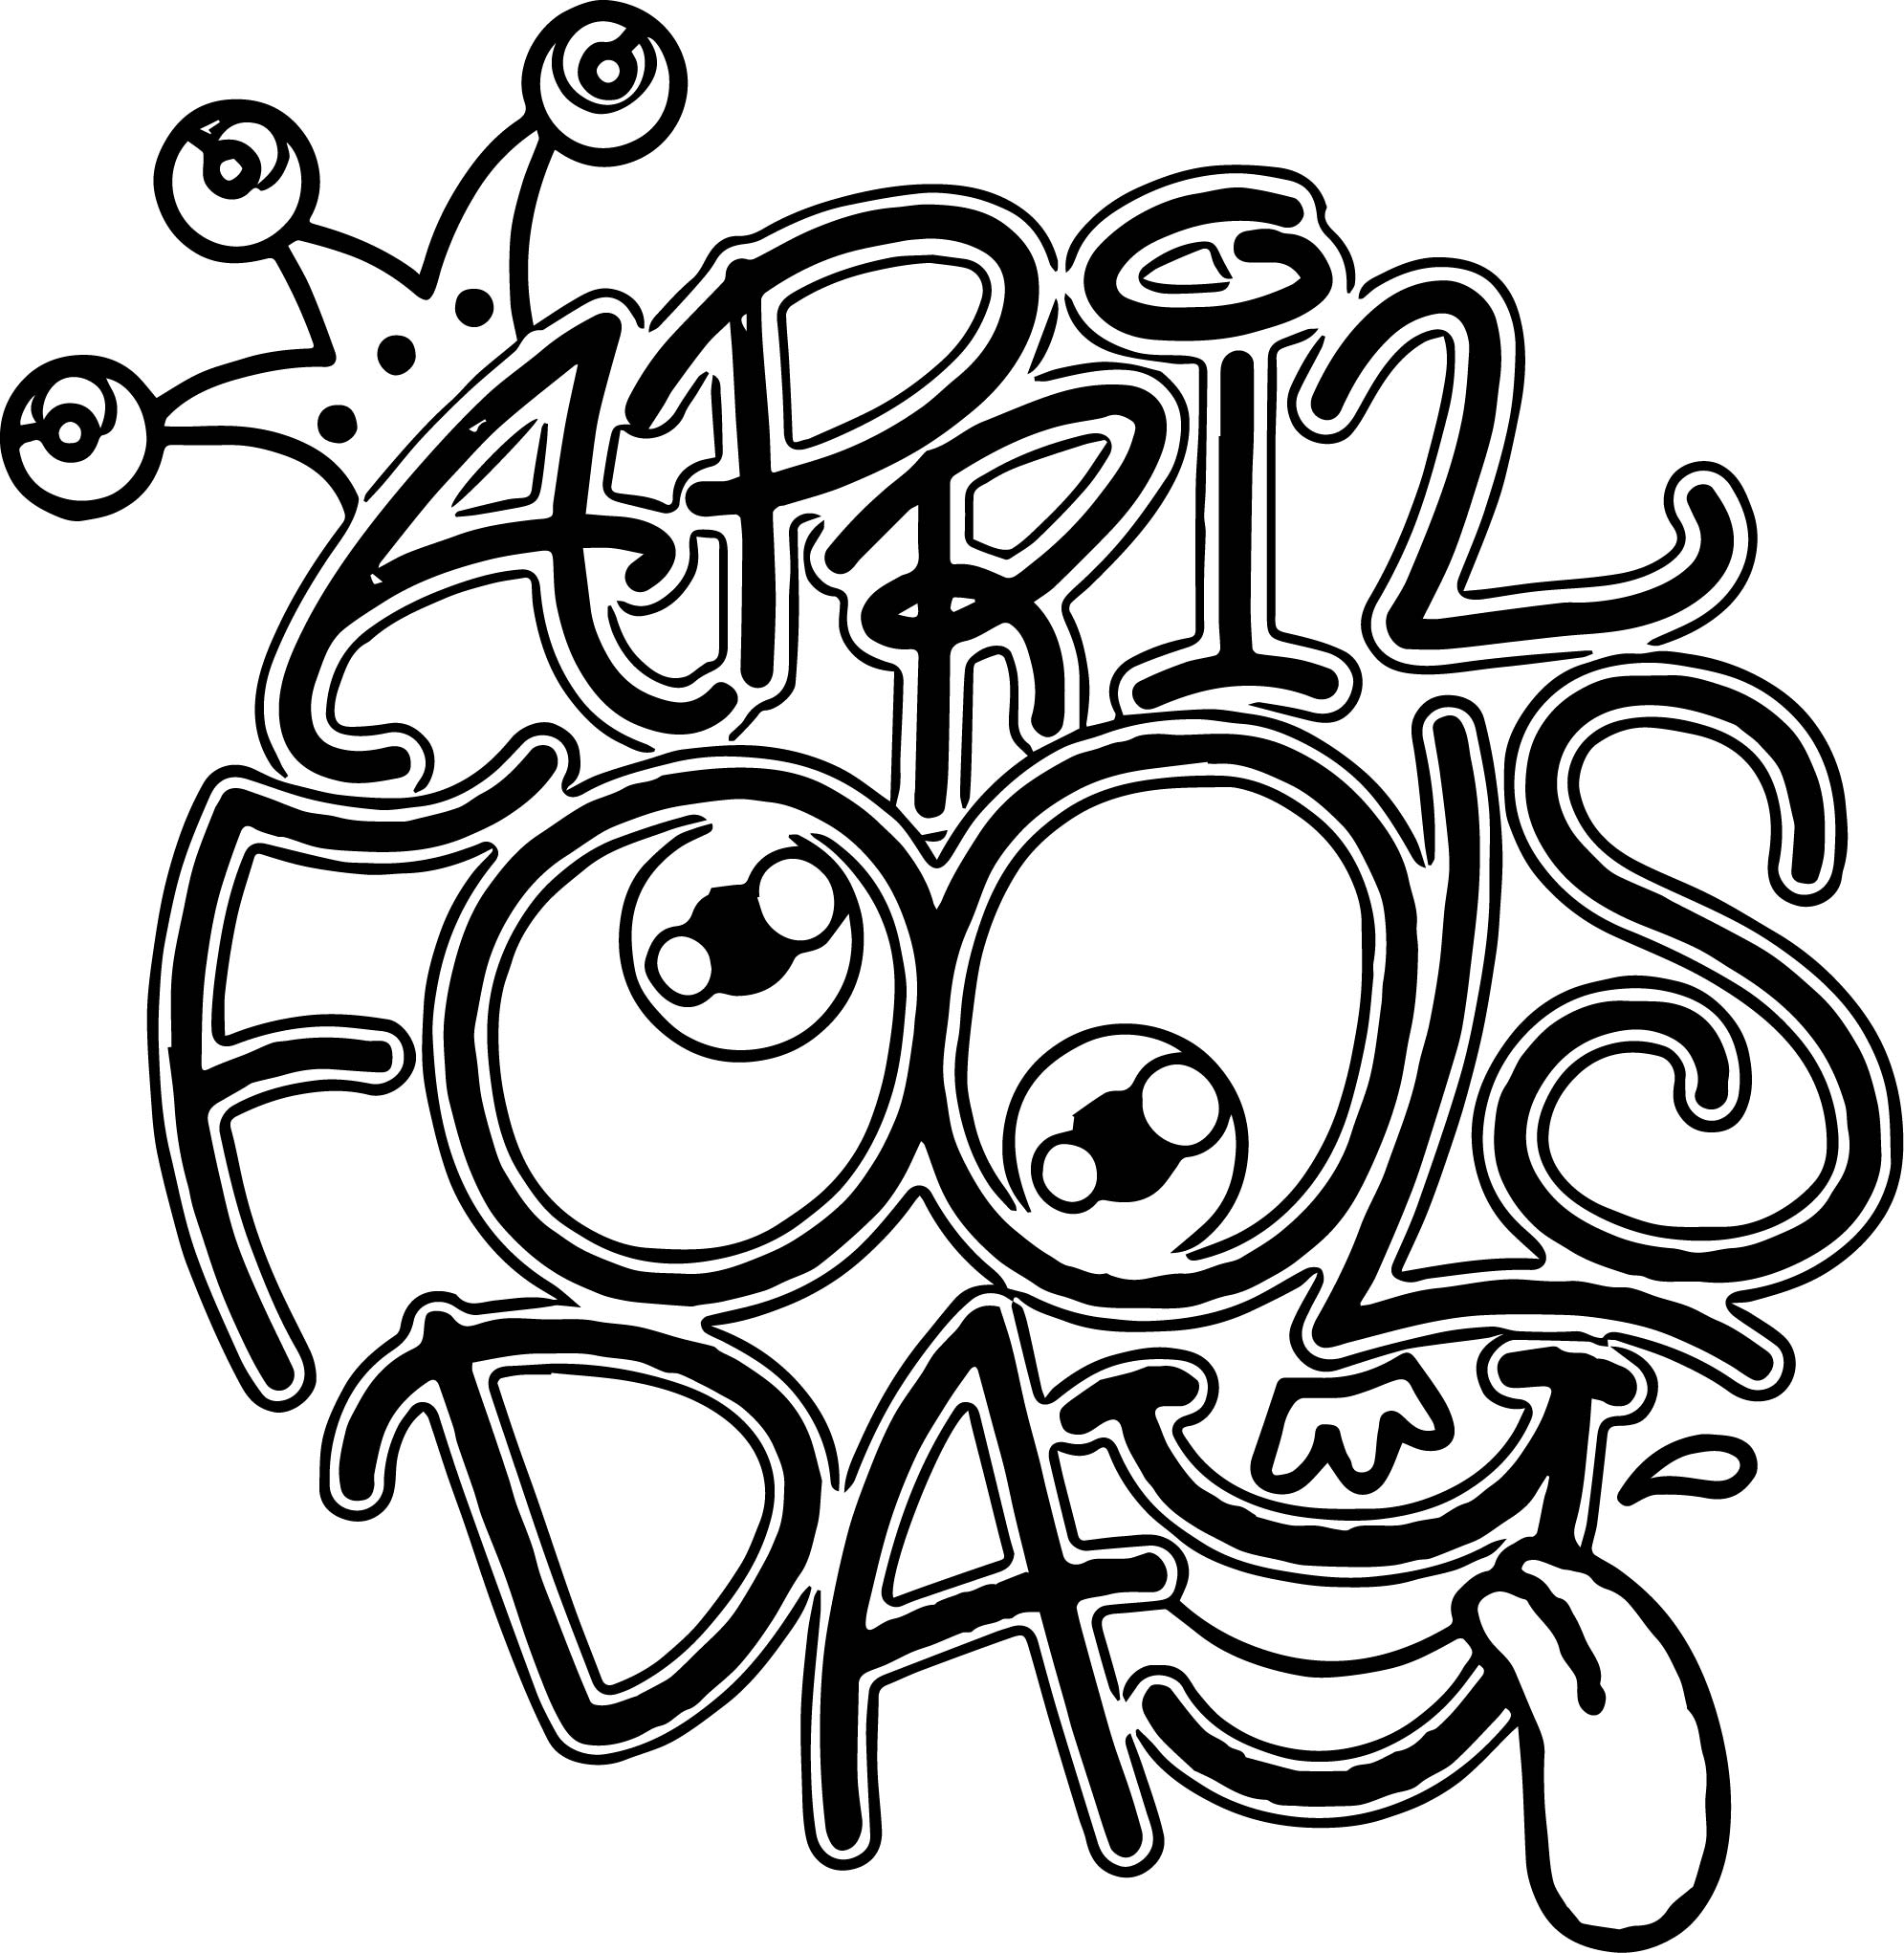 April Fool Comic Smile Face Coloring Page